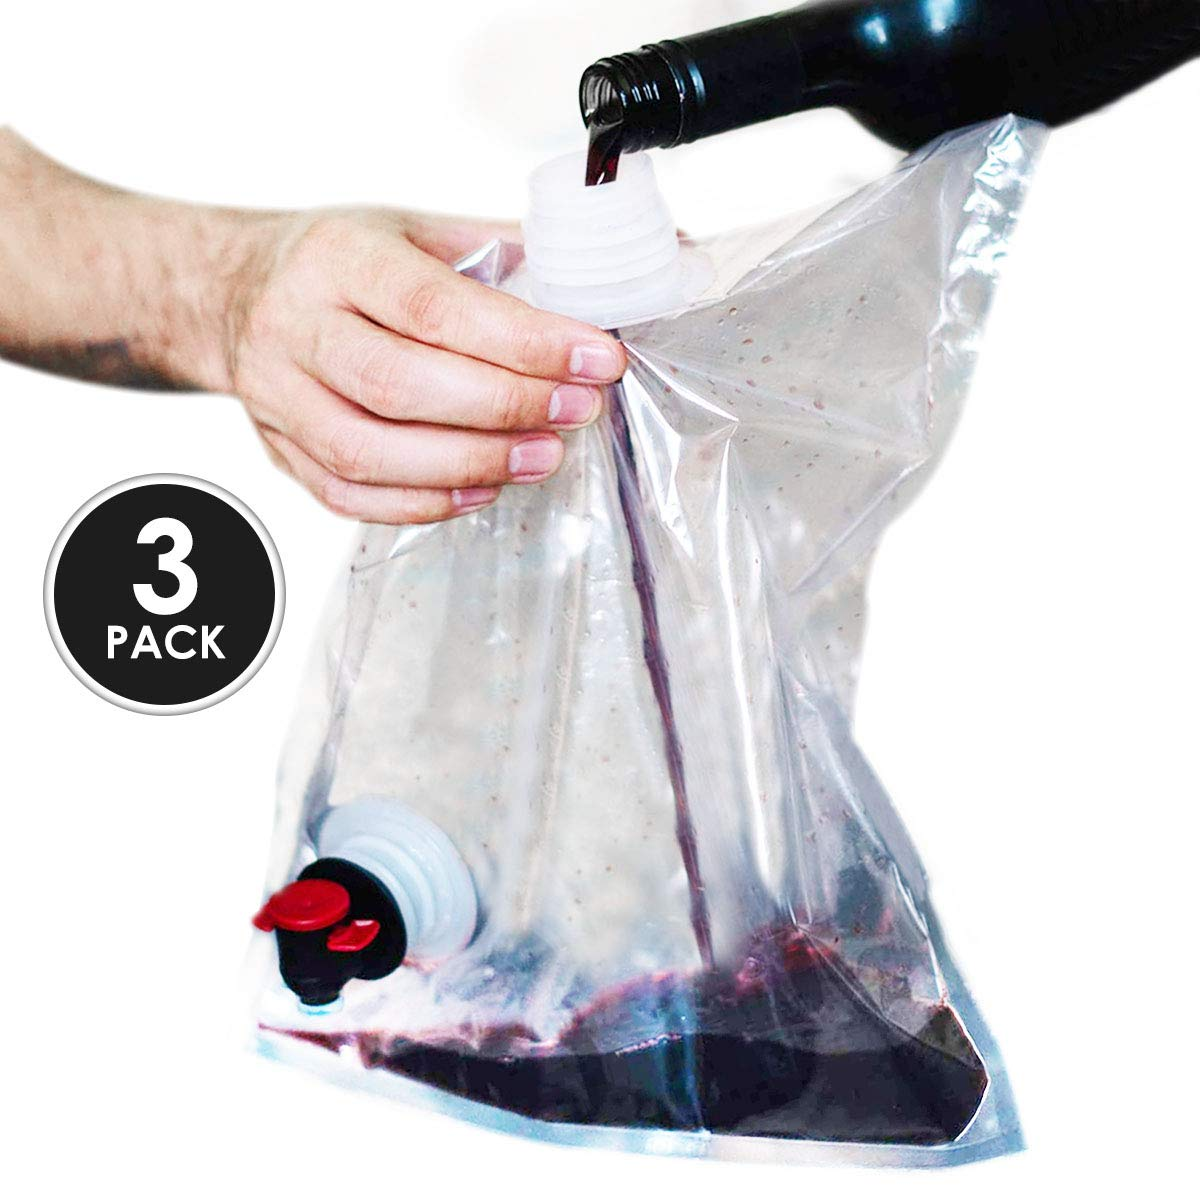 FILL IT!' Wine Baggies for use in 'BAG IT!' Wine Purse Bag (3 Pack)